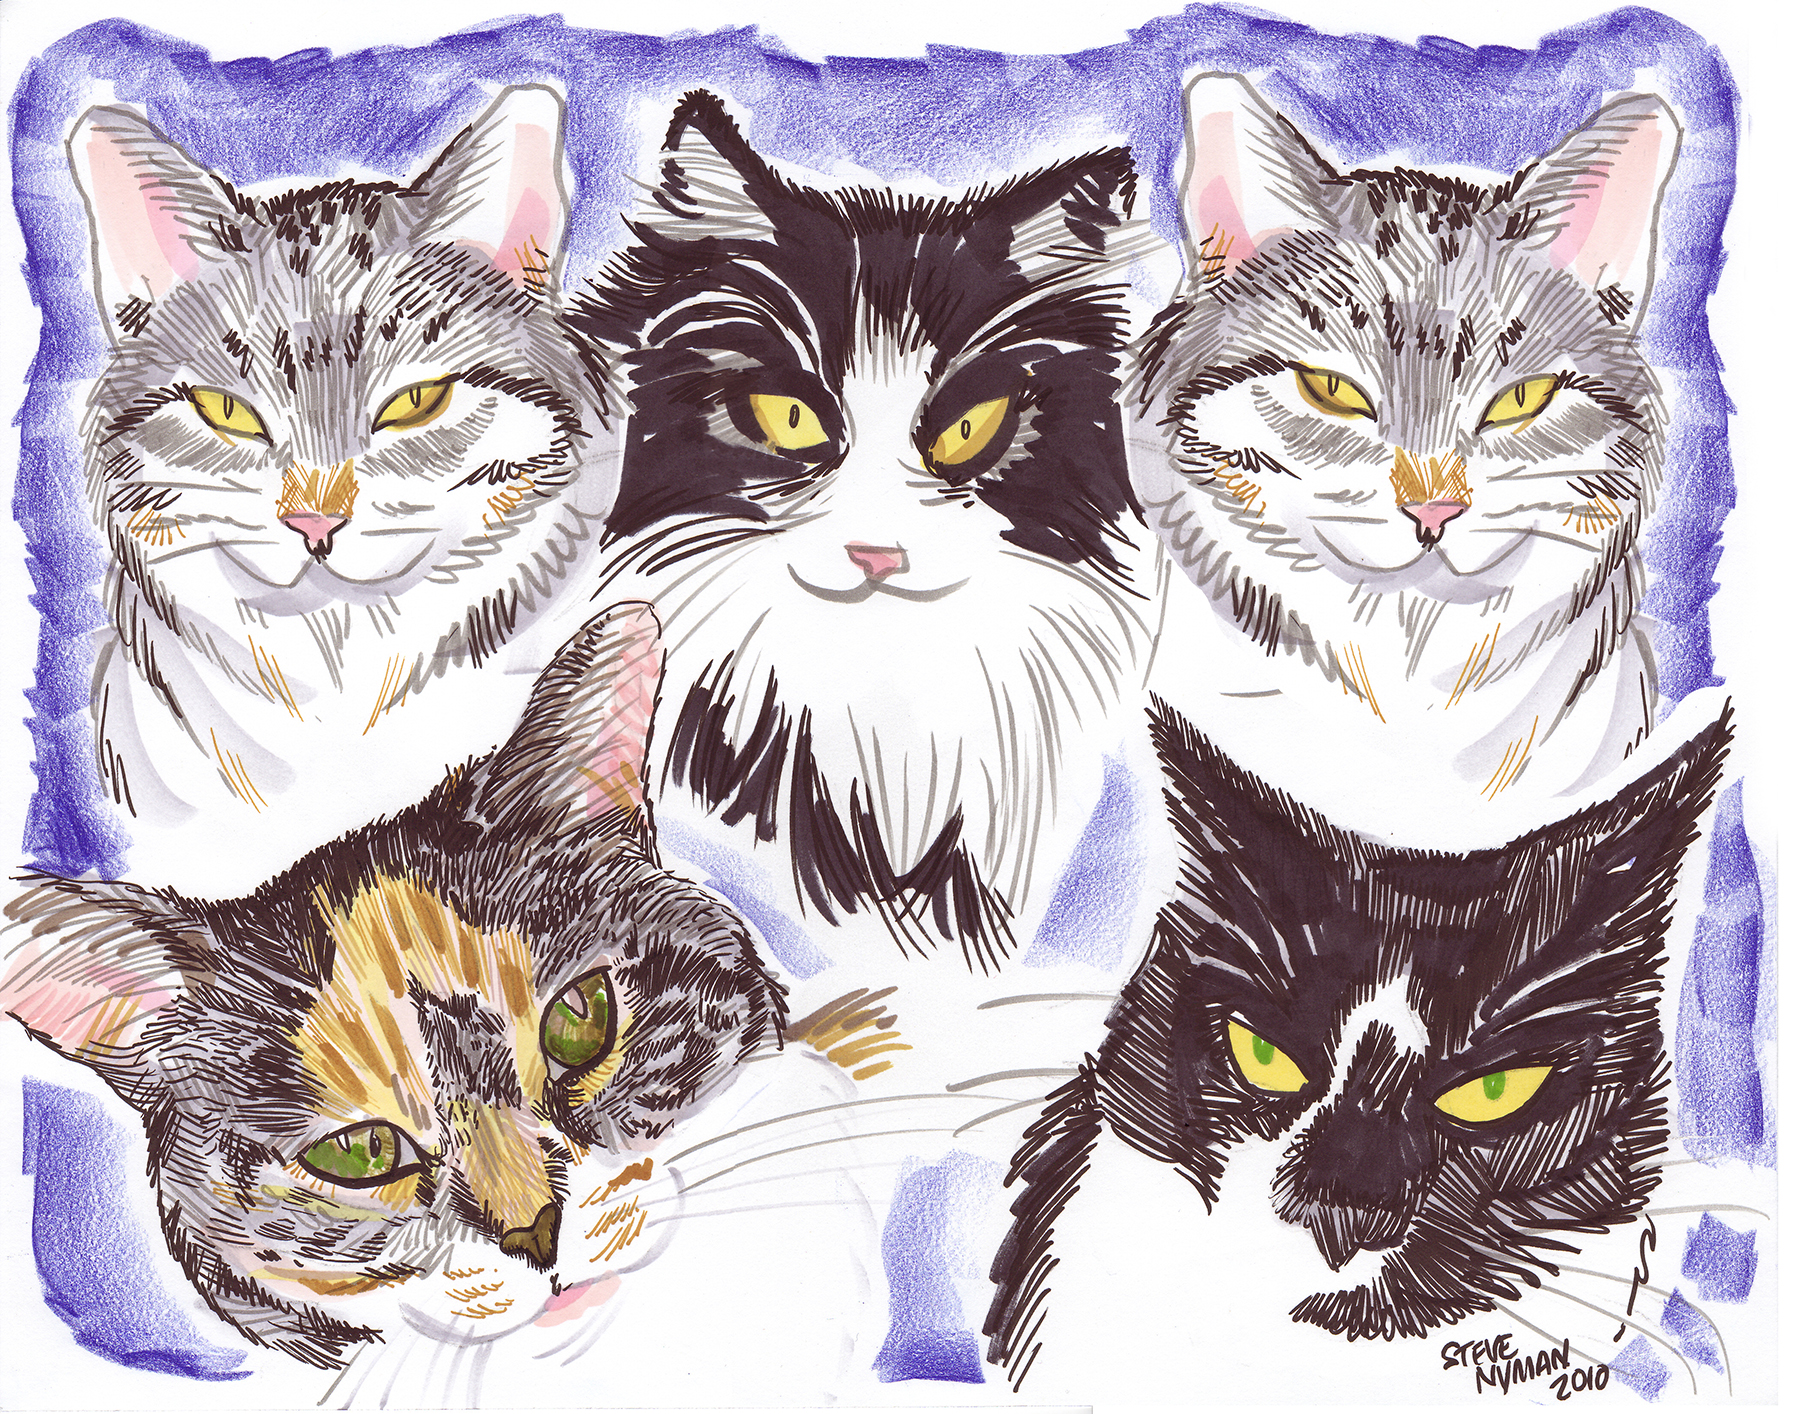 Cat caricature by Steve Nyman /Image Courtesy: Garden State Cat Club